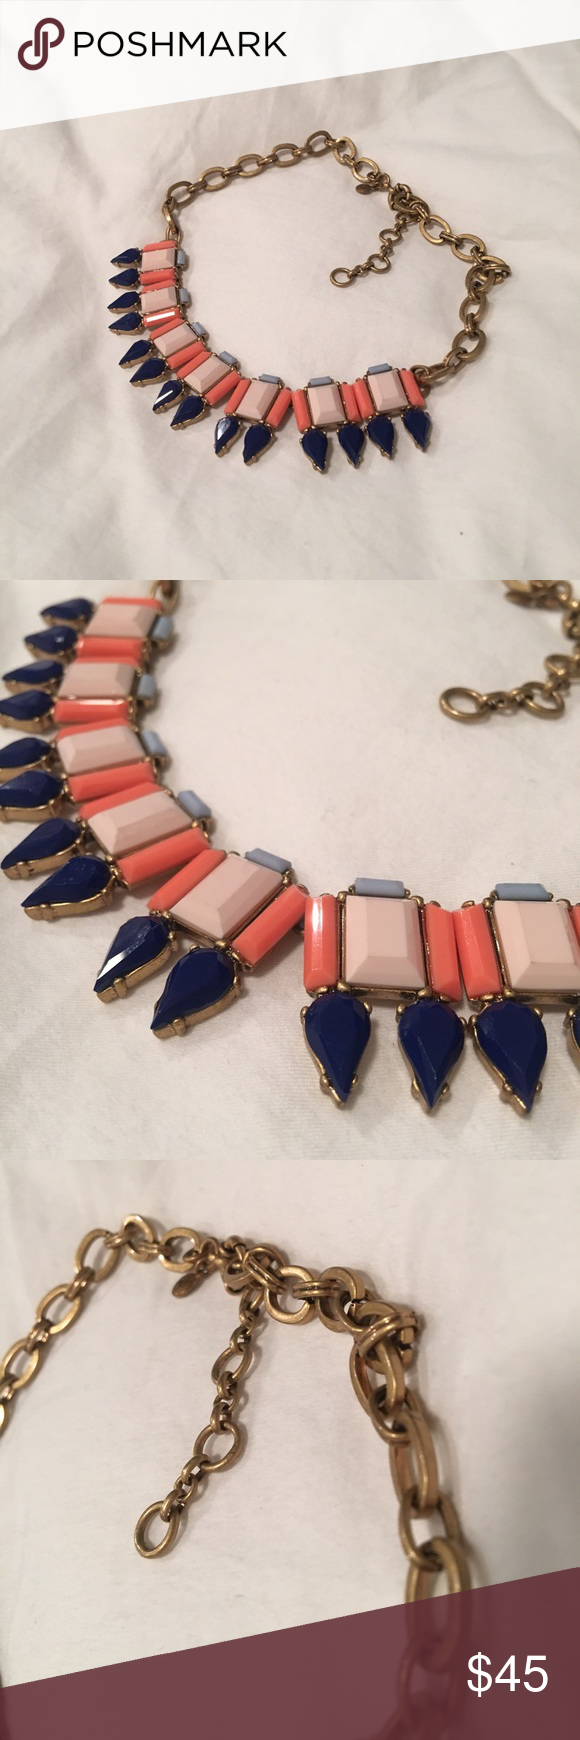 J Crew Necklace Perfect condition, never worn/used Jewelry Necklaces